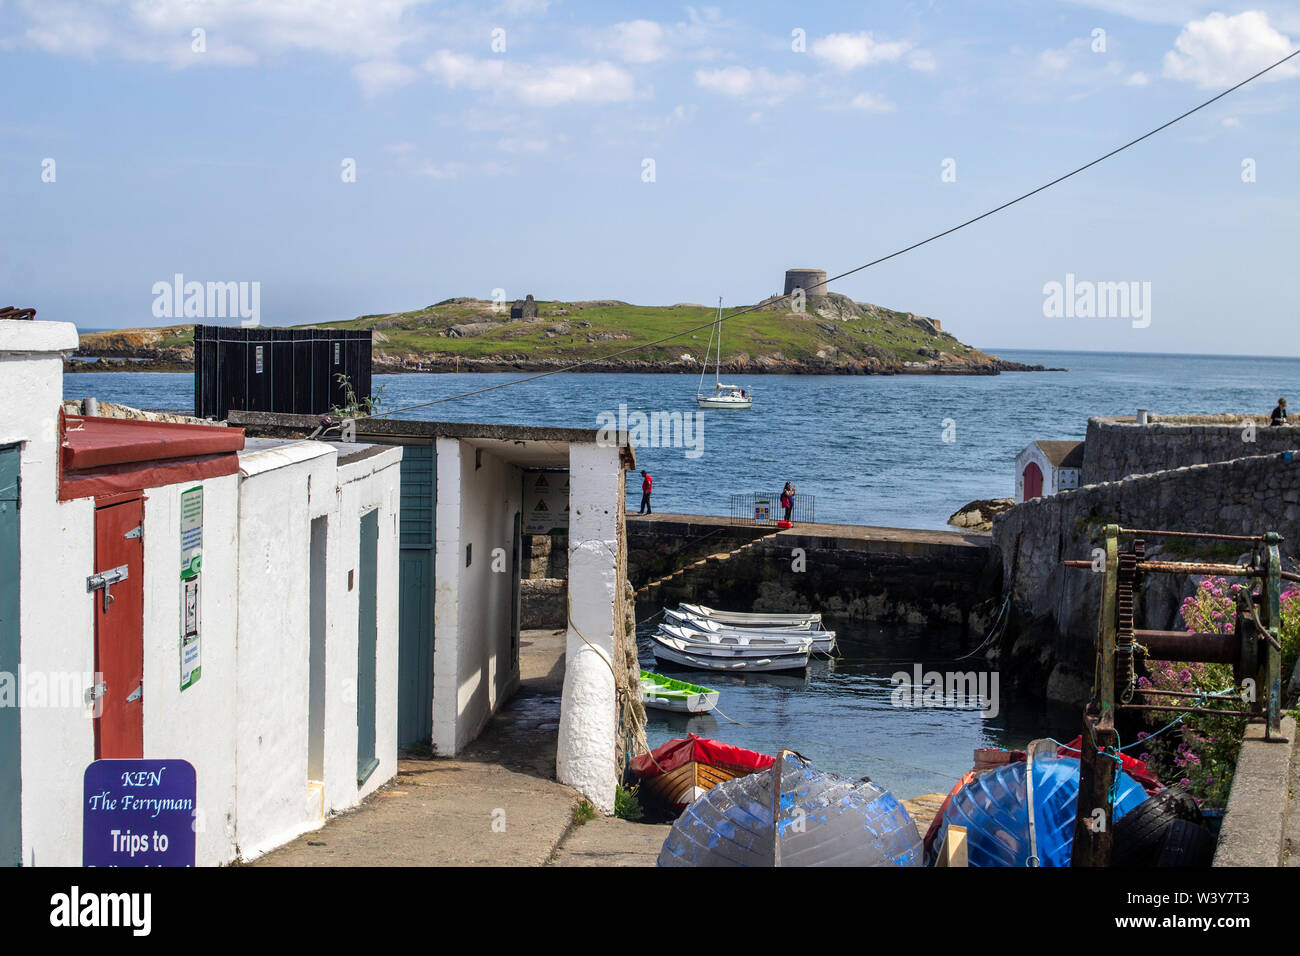 The entrance to Coliemore Harbour in Dalkey, County Dublin, Ireland, with Dalkey Island in the background. - Stock Image